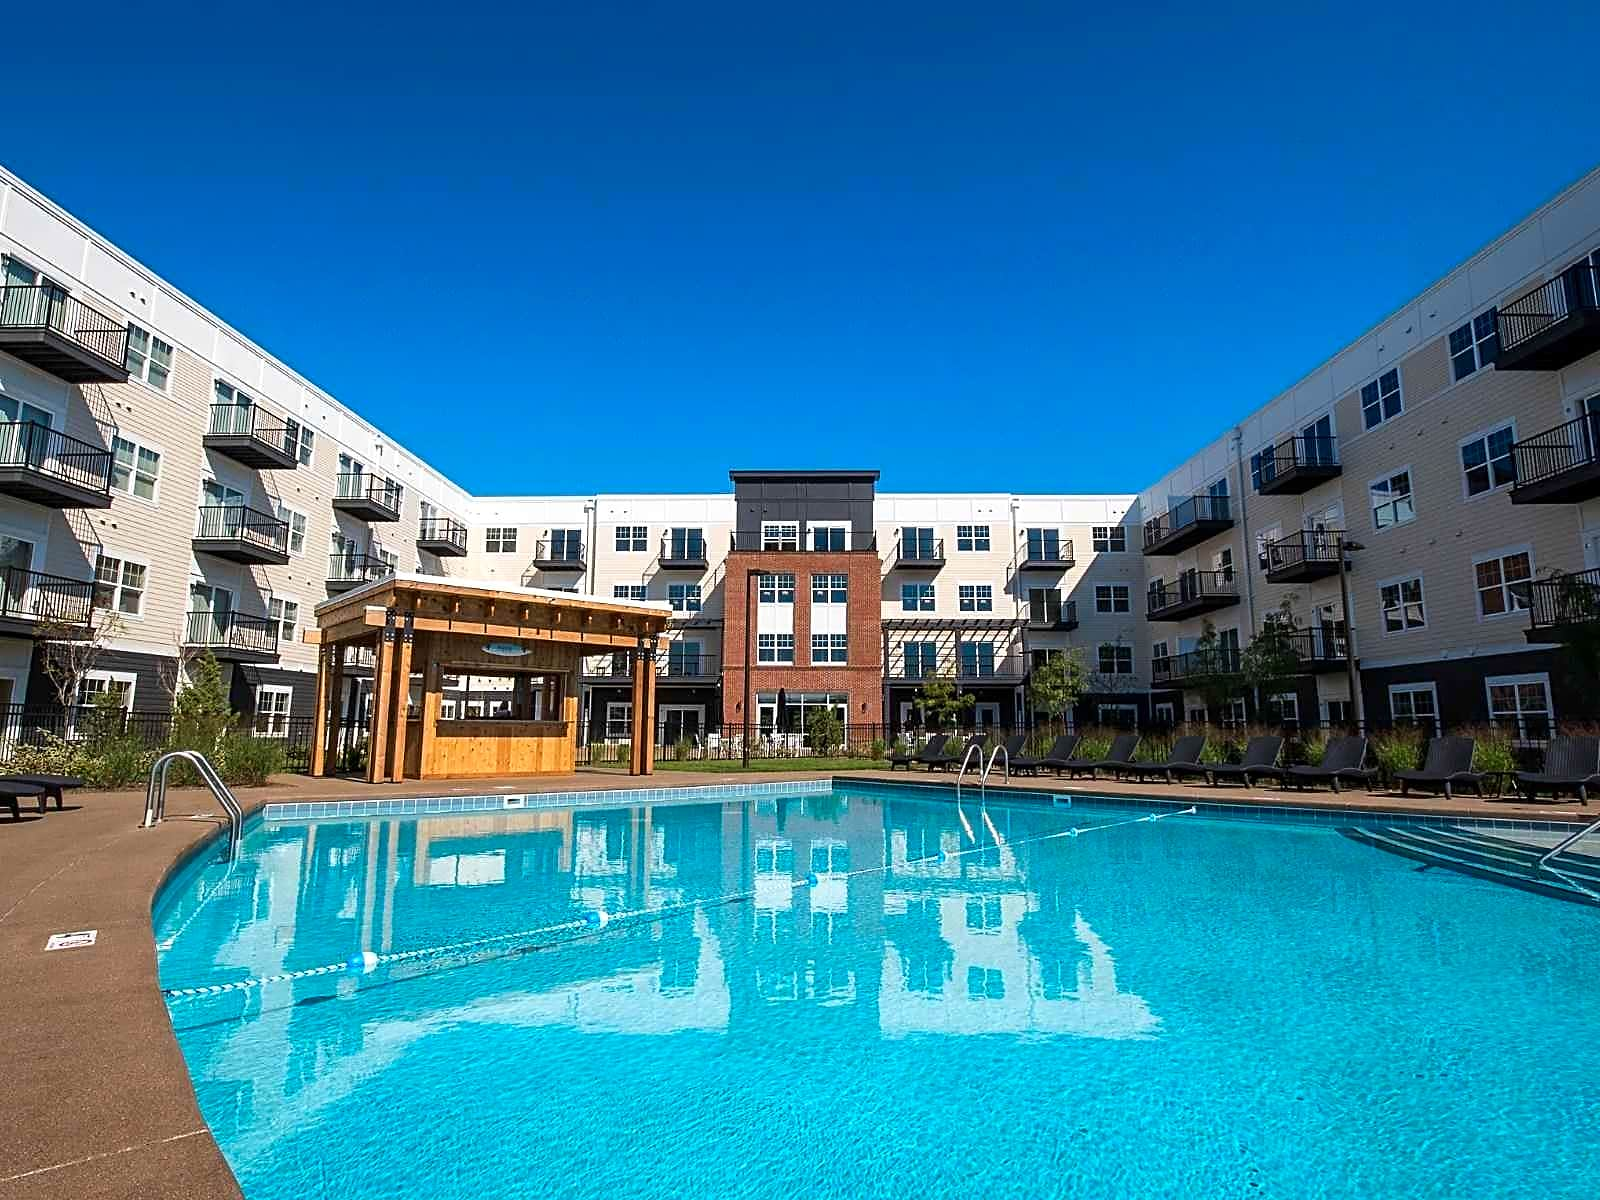 Apartments Near OWU Mirada for Ohio Wesleyan University Students in Delaware, OH